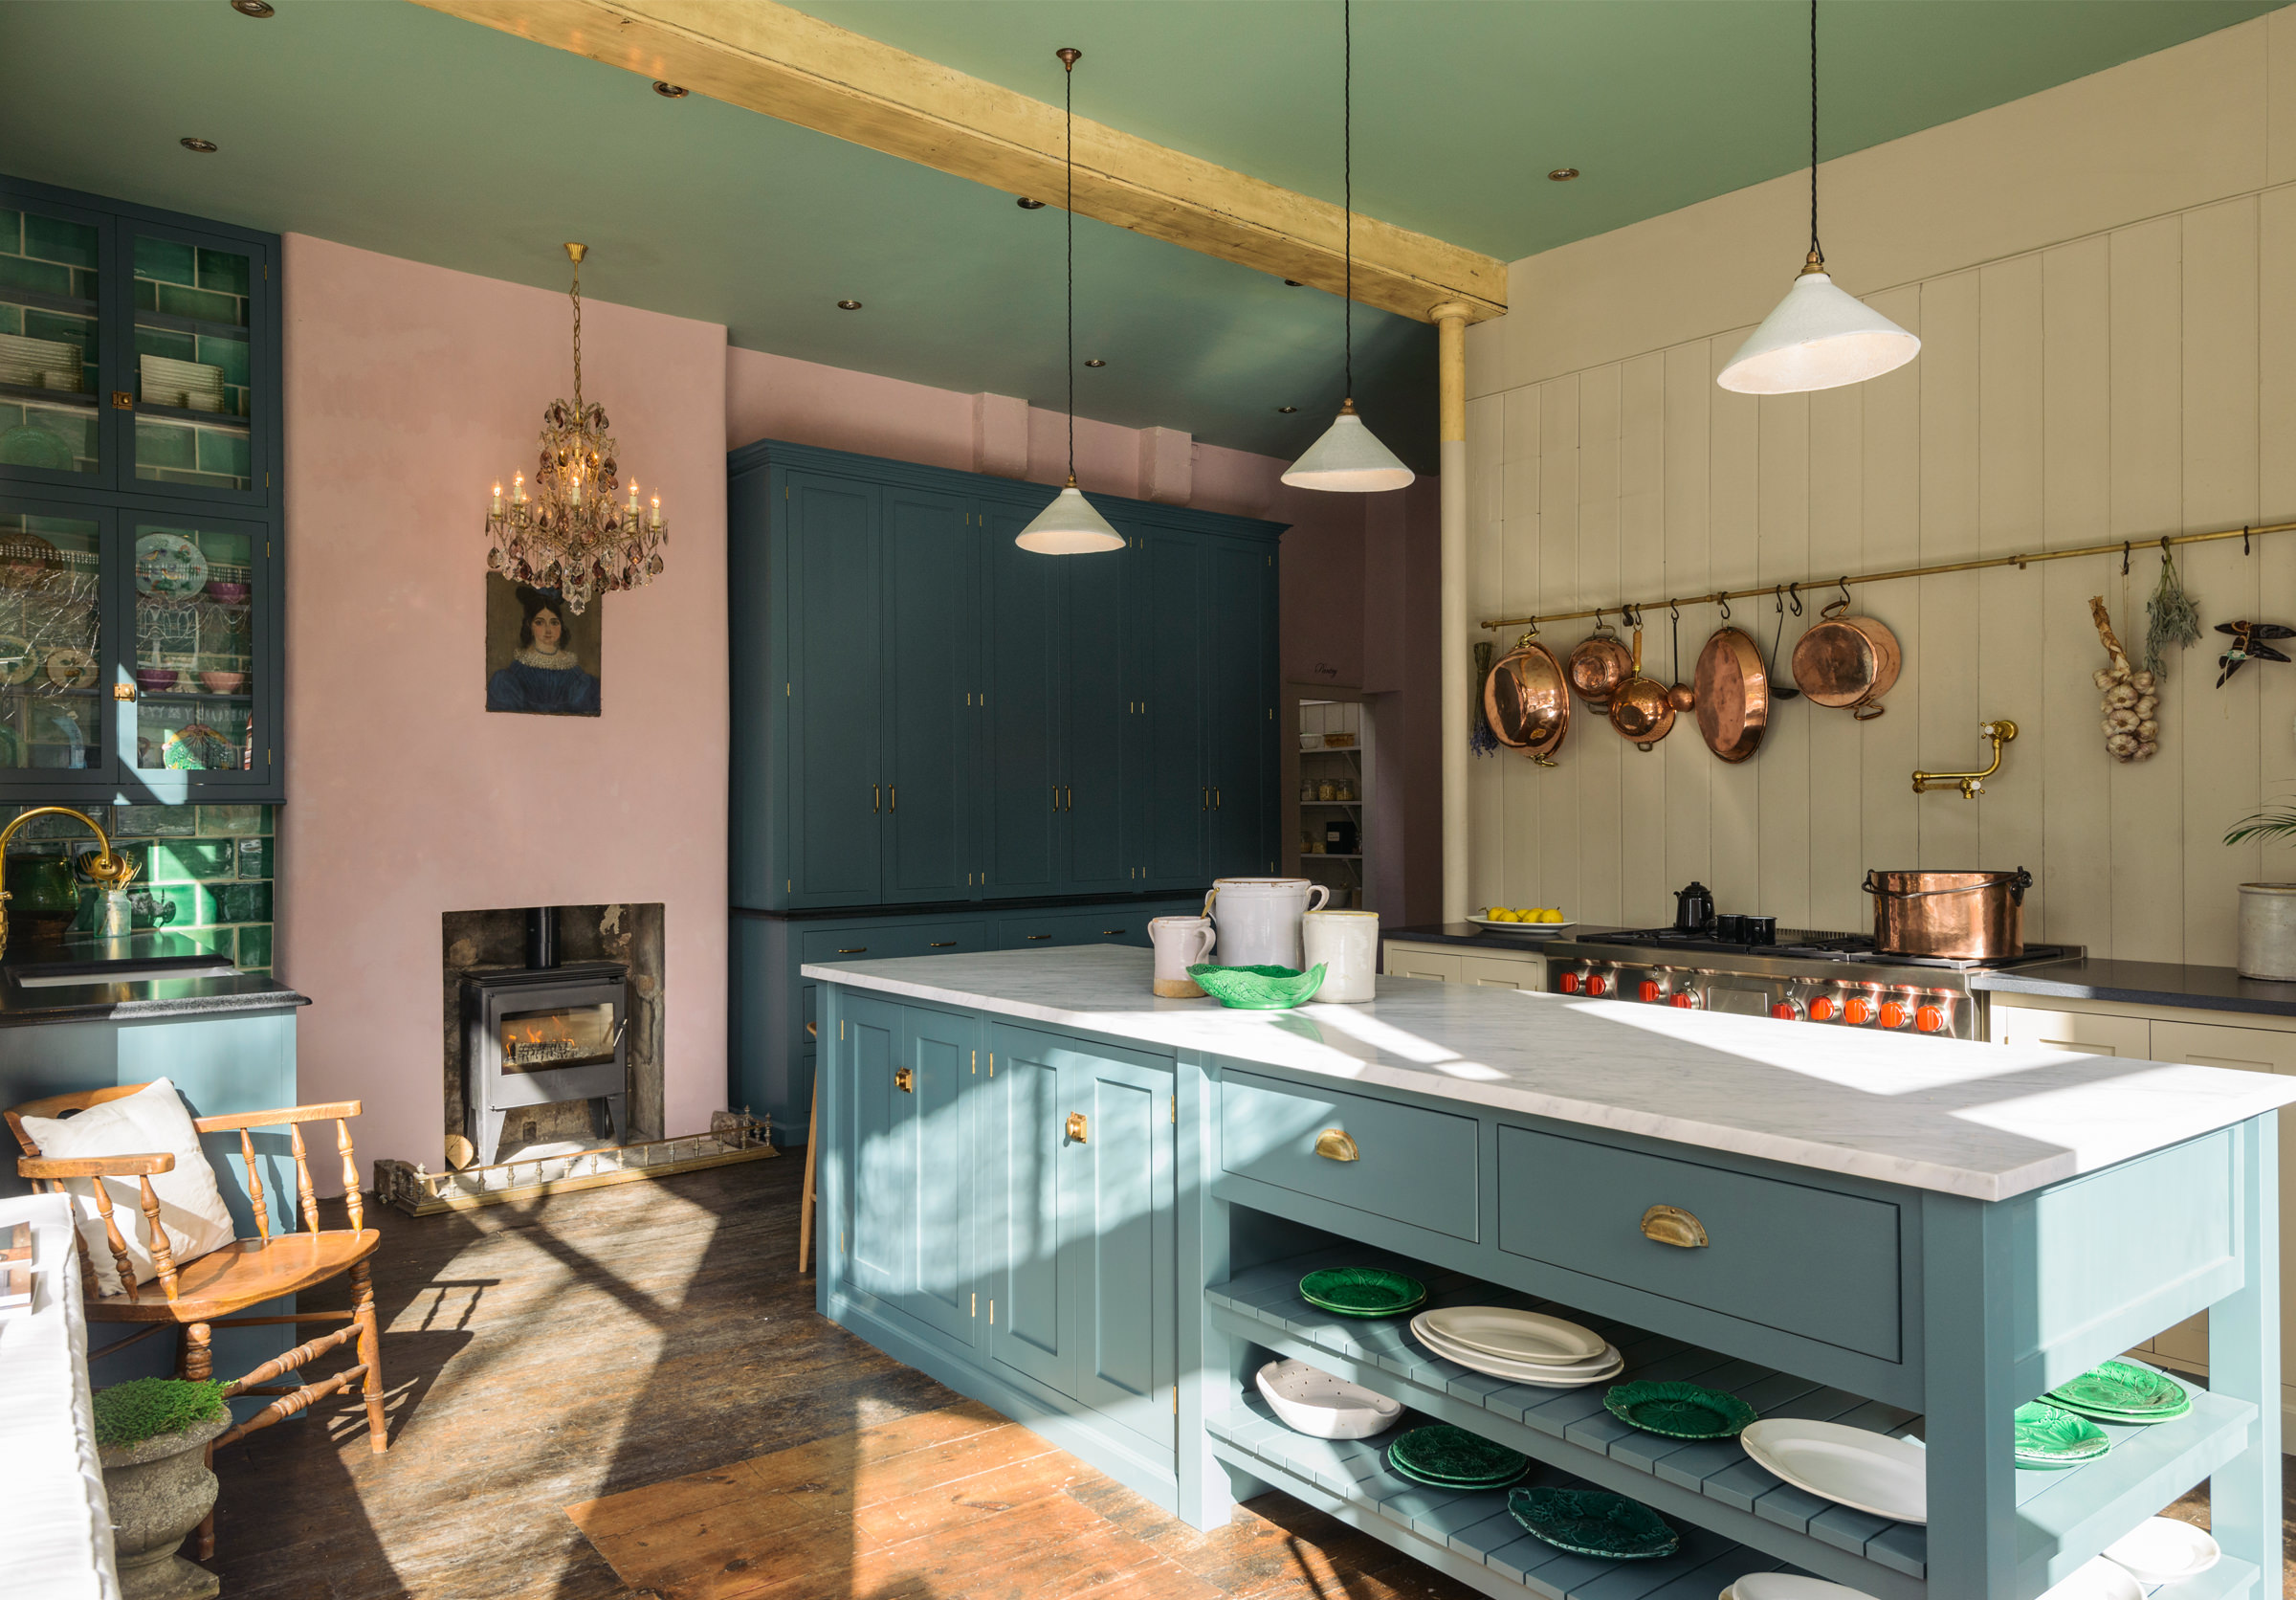 What Is A Kitchen: DeVOL Directory: The St. John's Square Showroom Kitchen